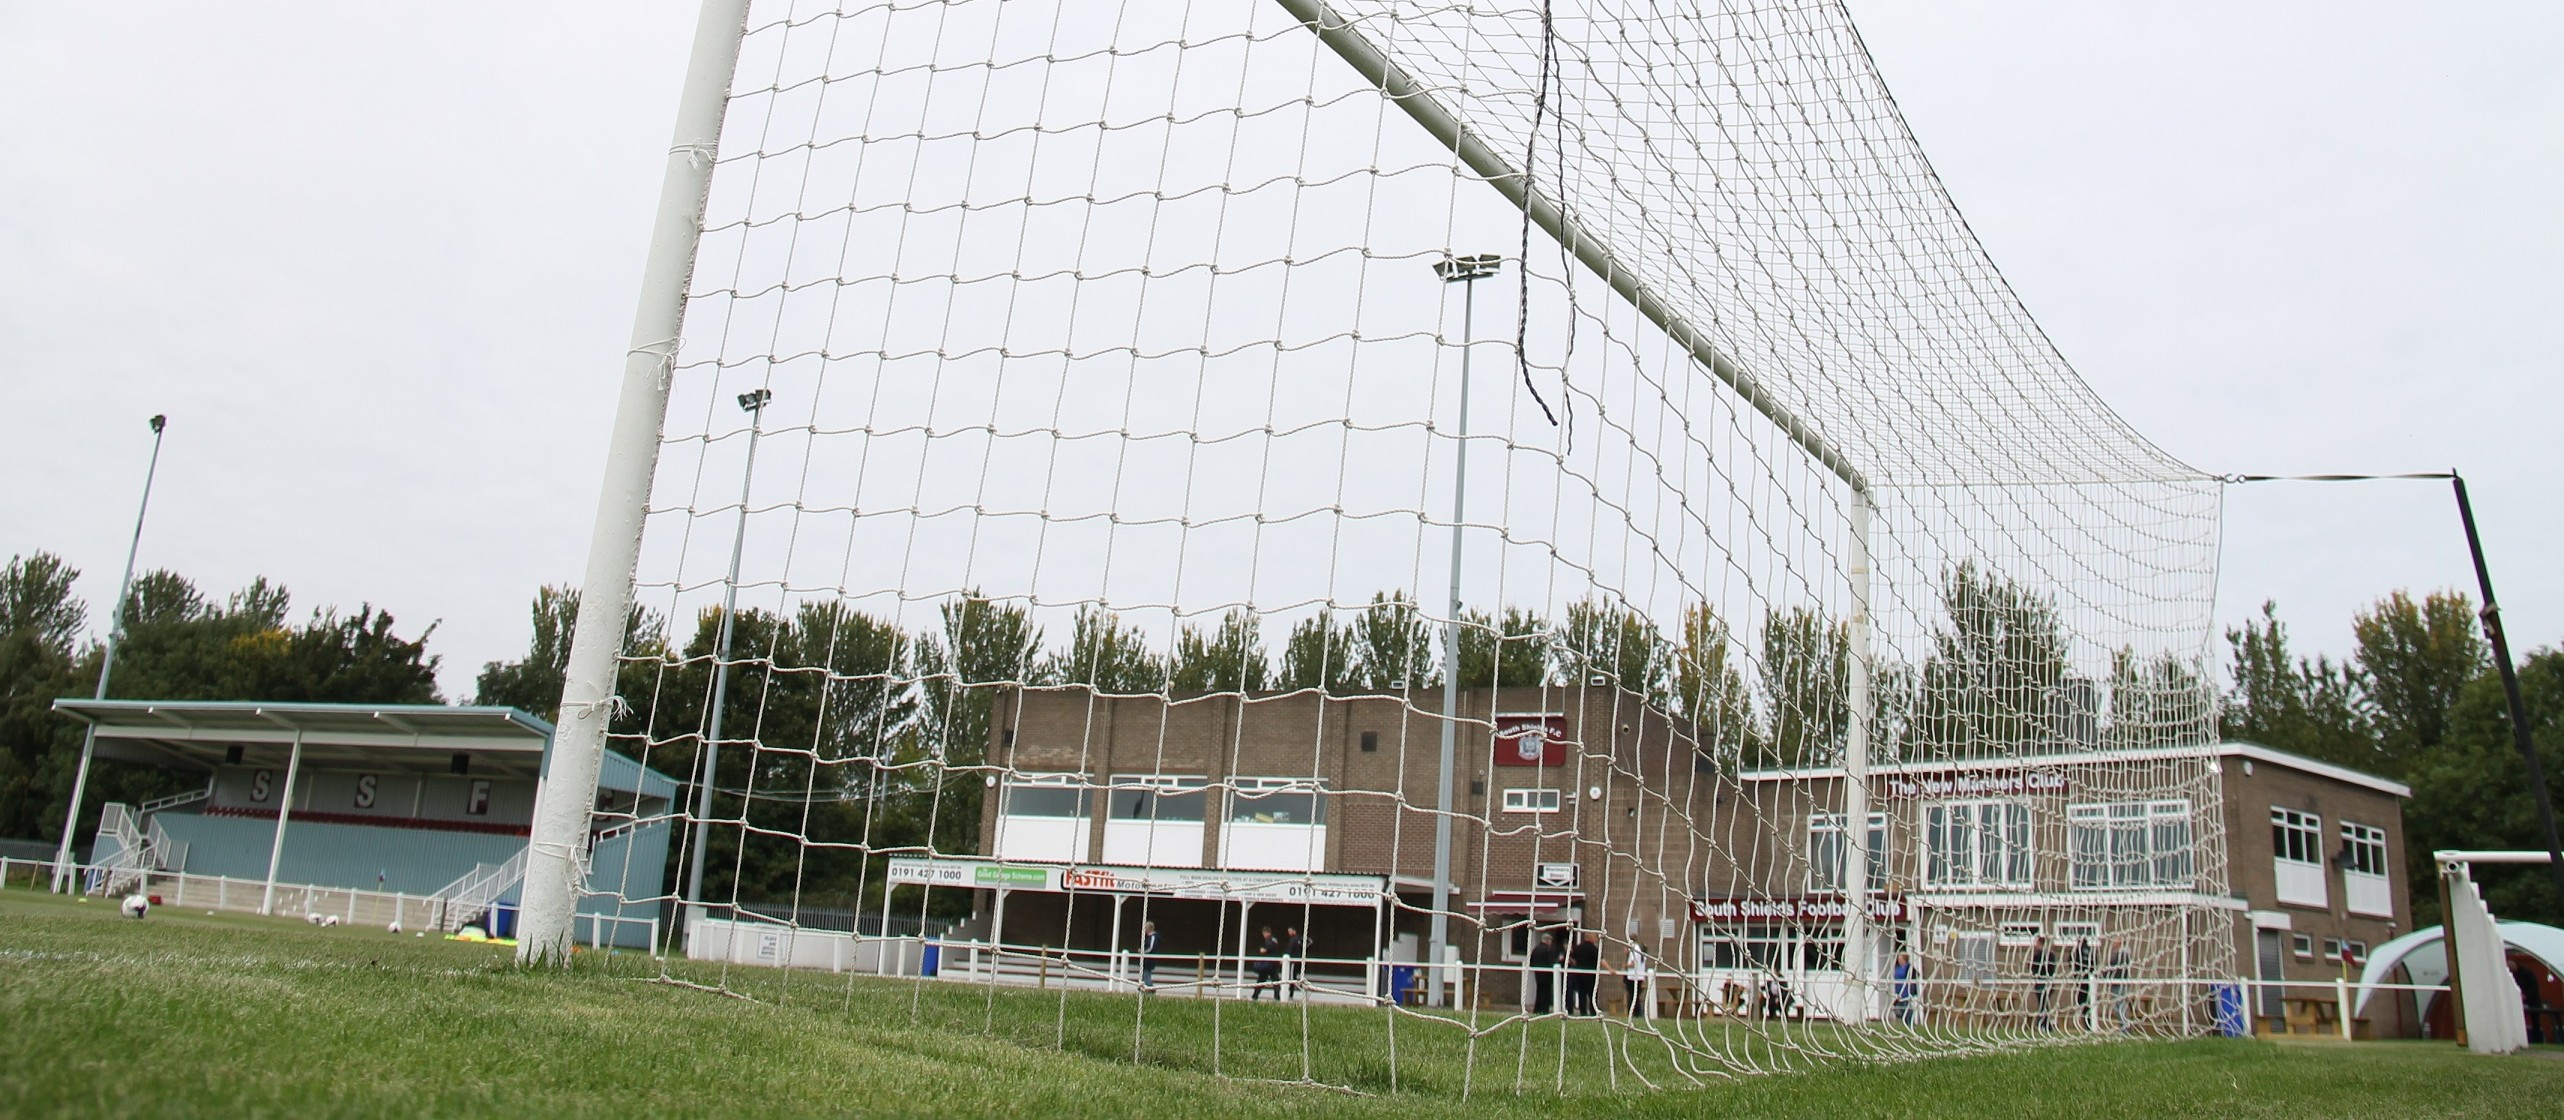 South Shields vs Morpeth Town: Pitch inspection planned